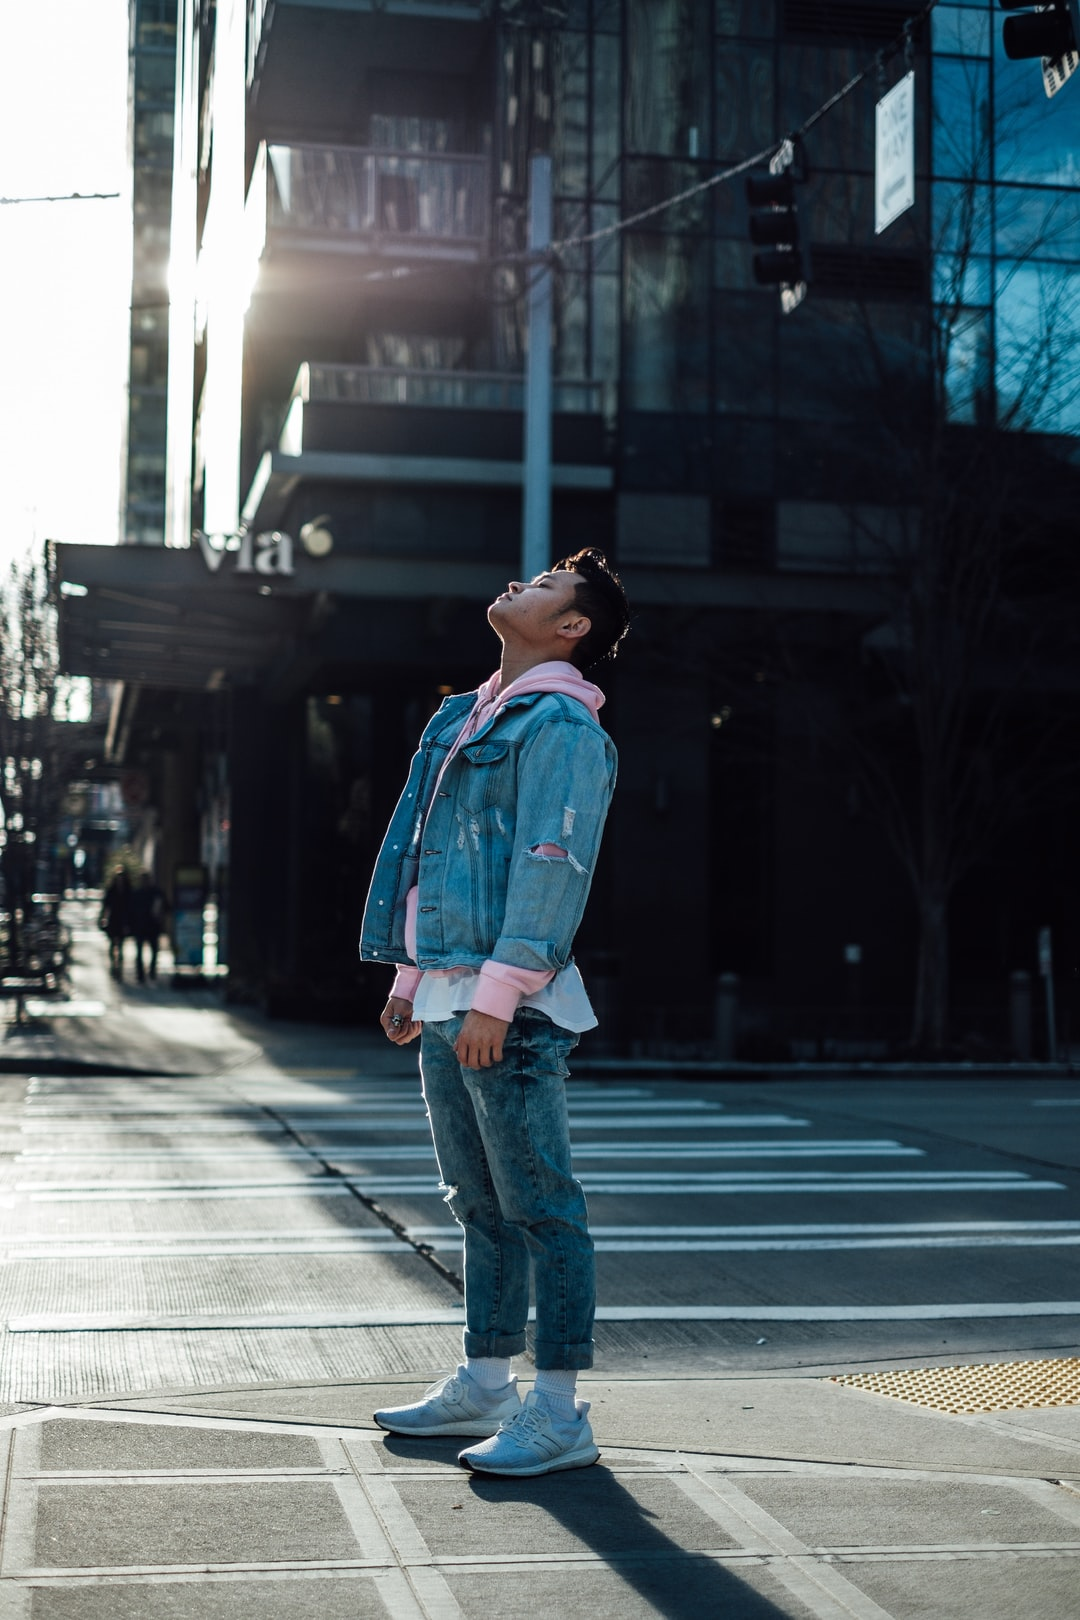 man in blue denim jacket standing on road during daytime